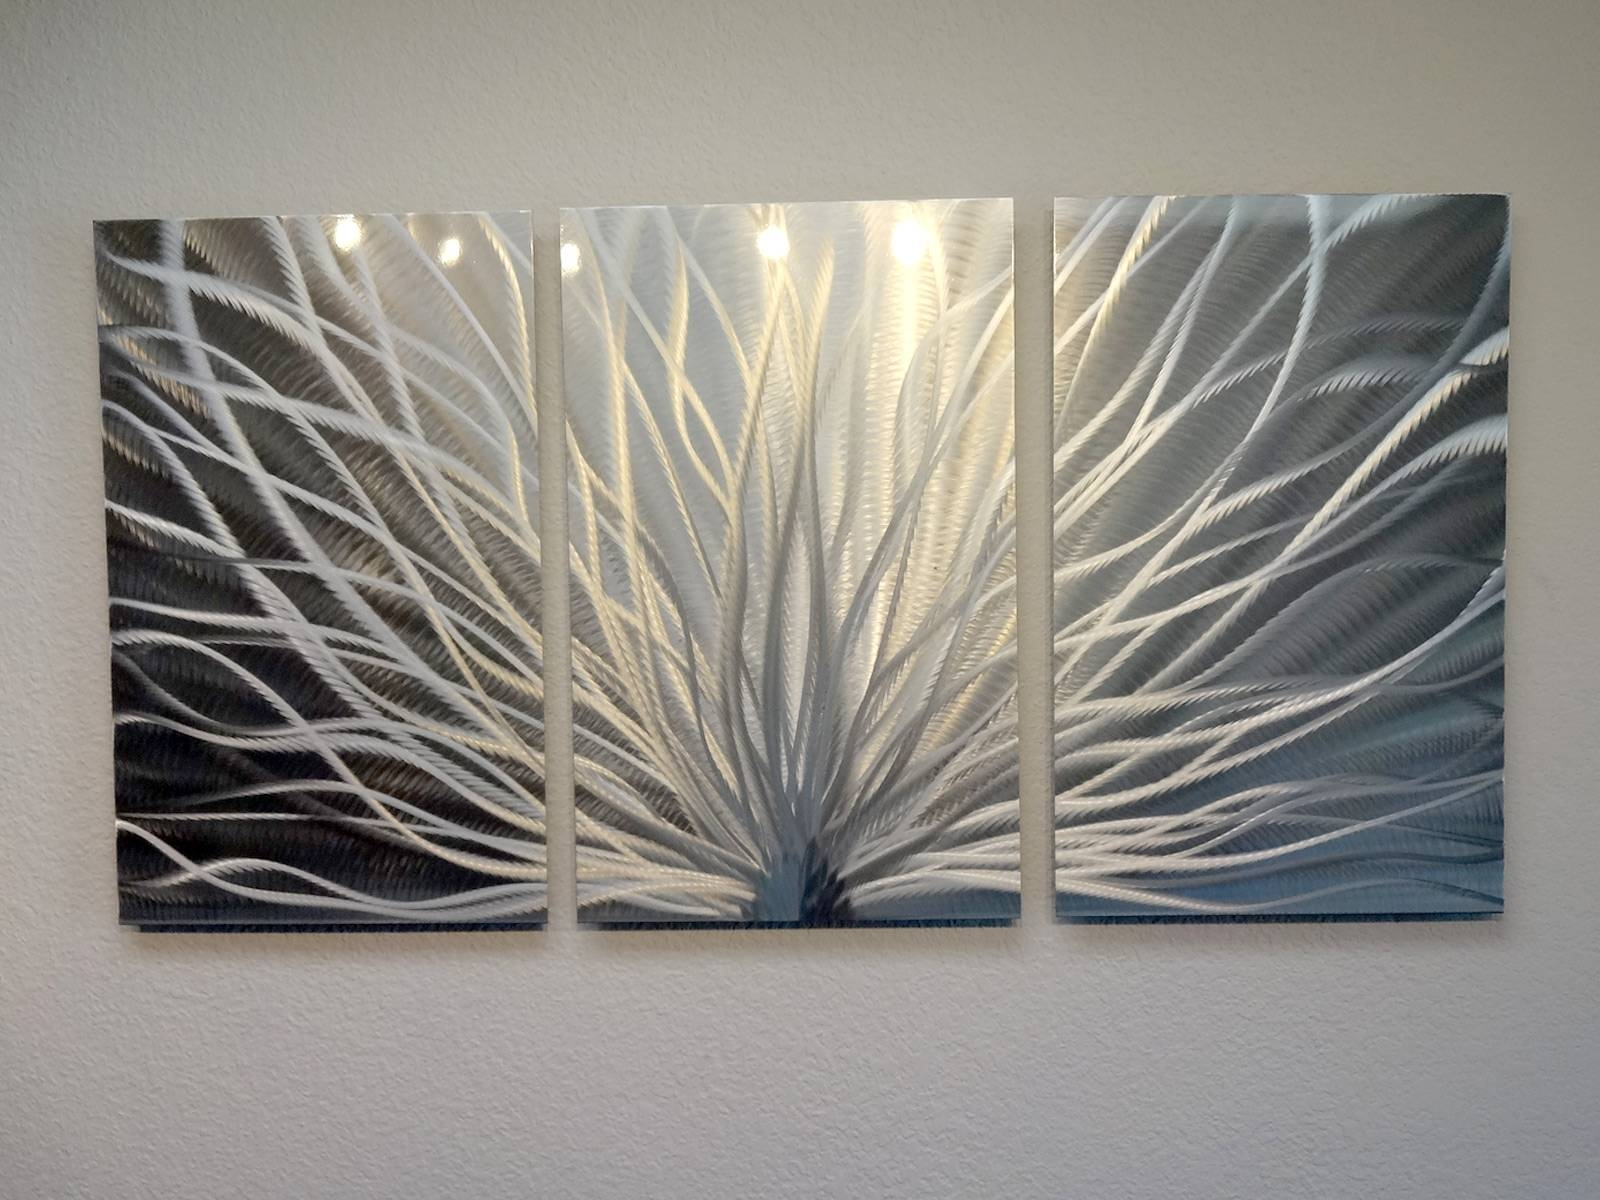 Radiance – 3 Panel Metal Wall Art Abstract Contemporary Modern For Latest Metal Wall Art Panels (View 6 of 20)